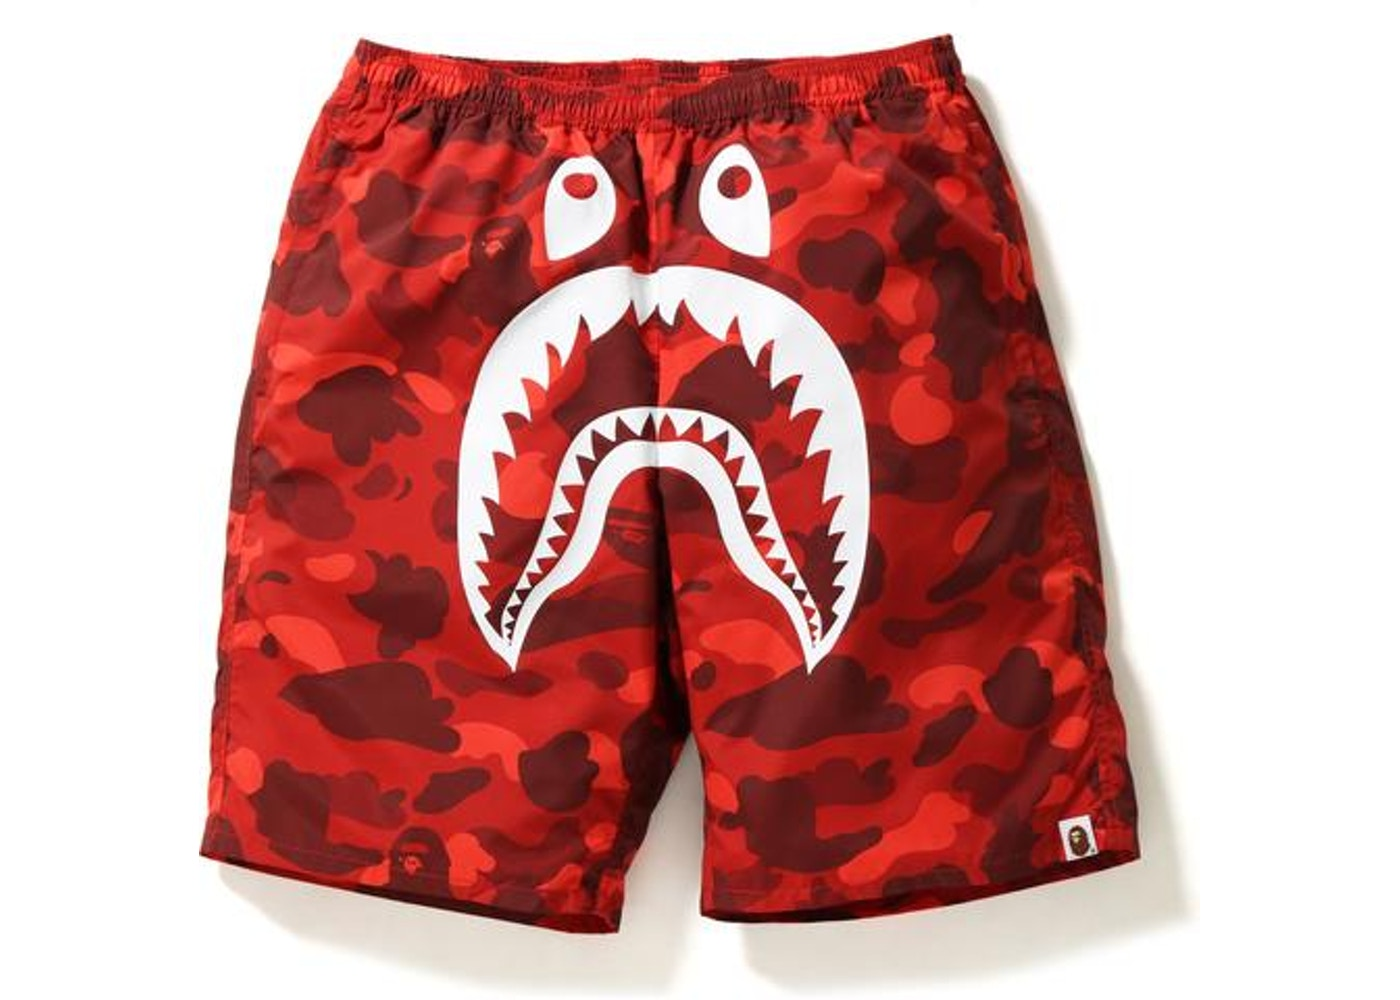 44c14ea4a55 BAPE Color Camo Shark Beach Shorts Red -